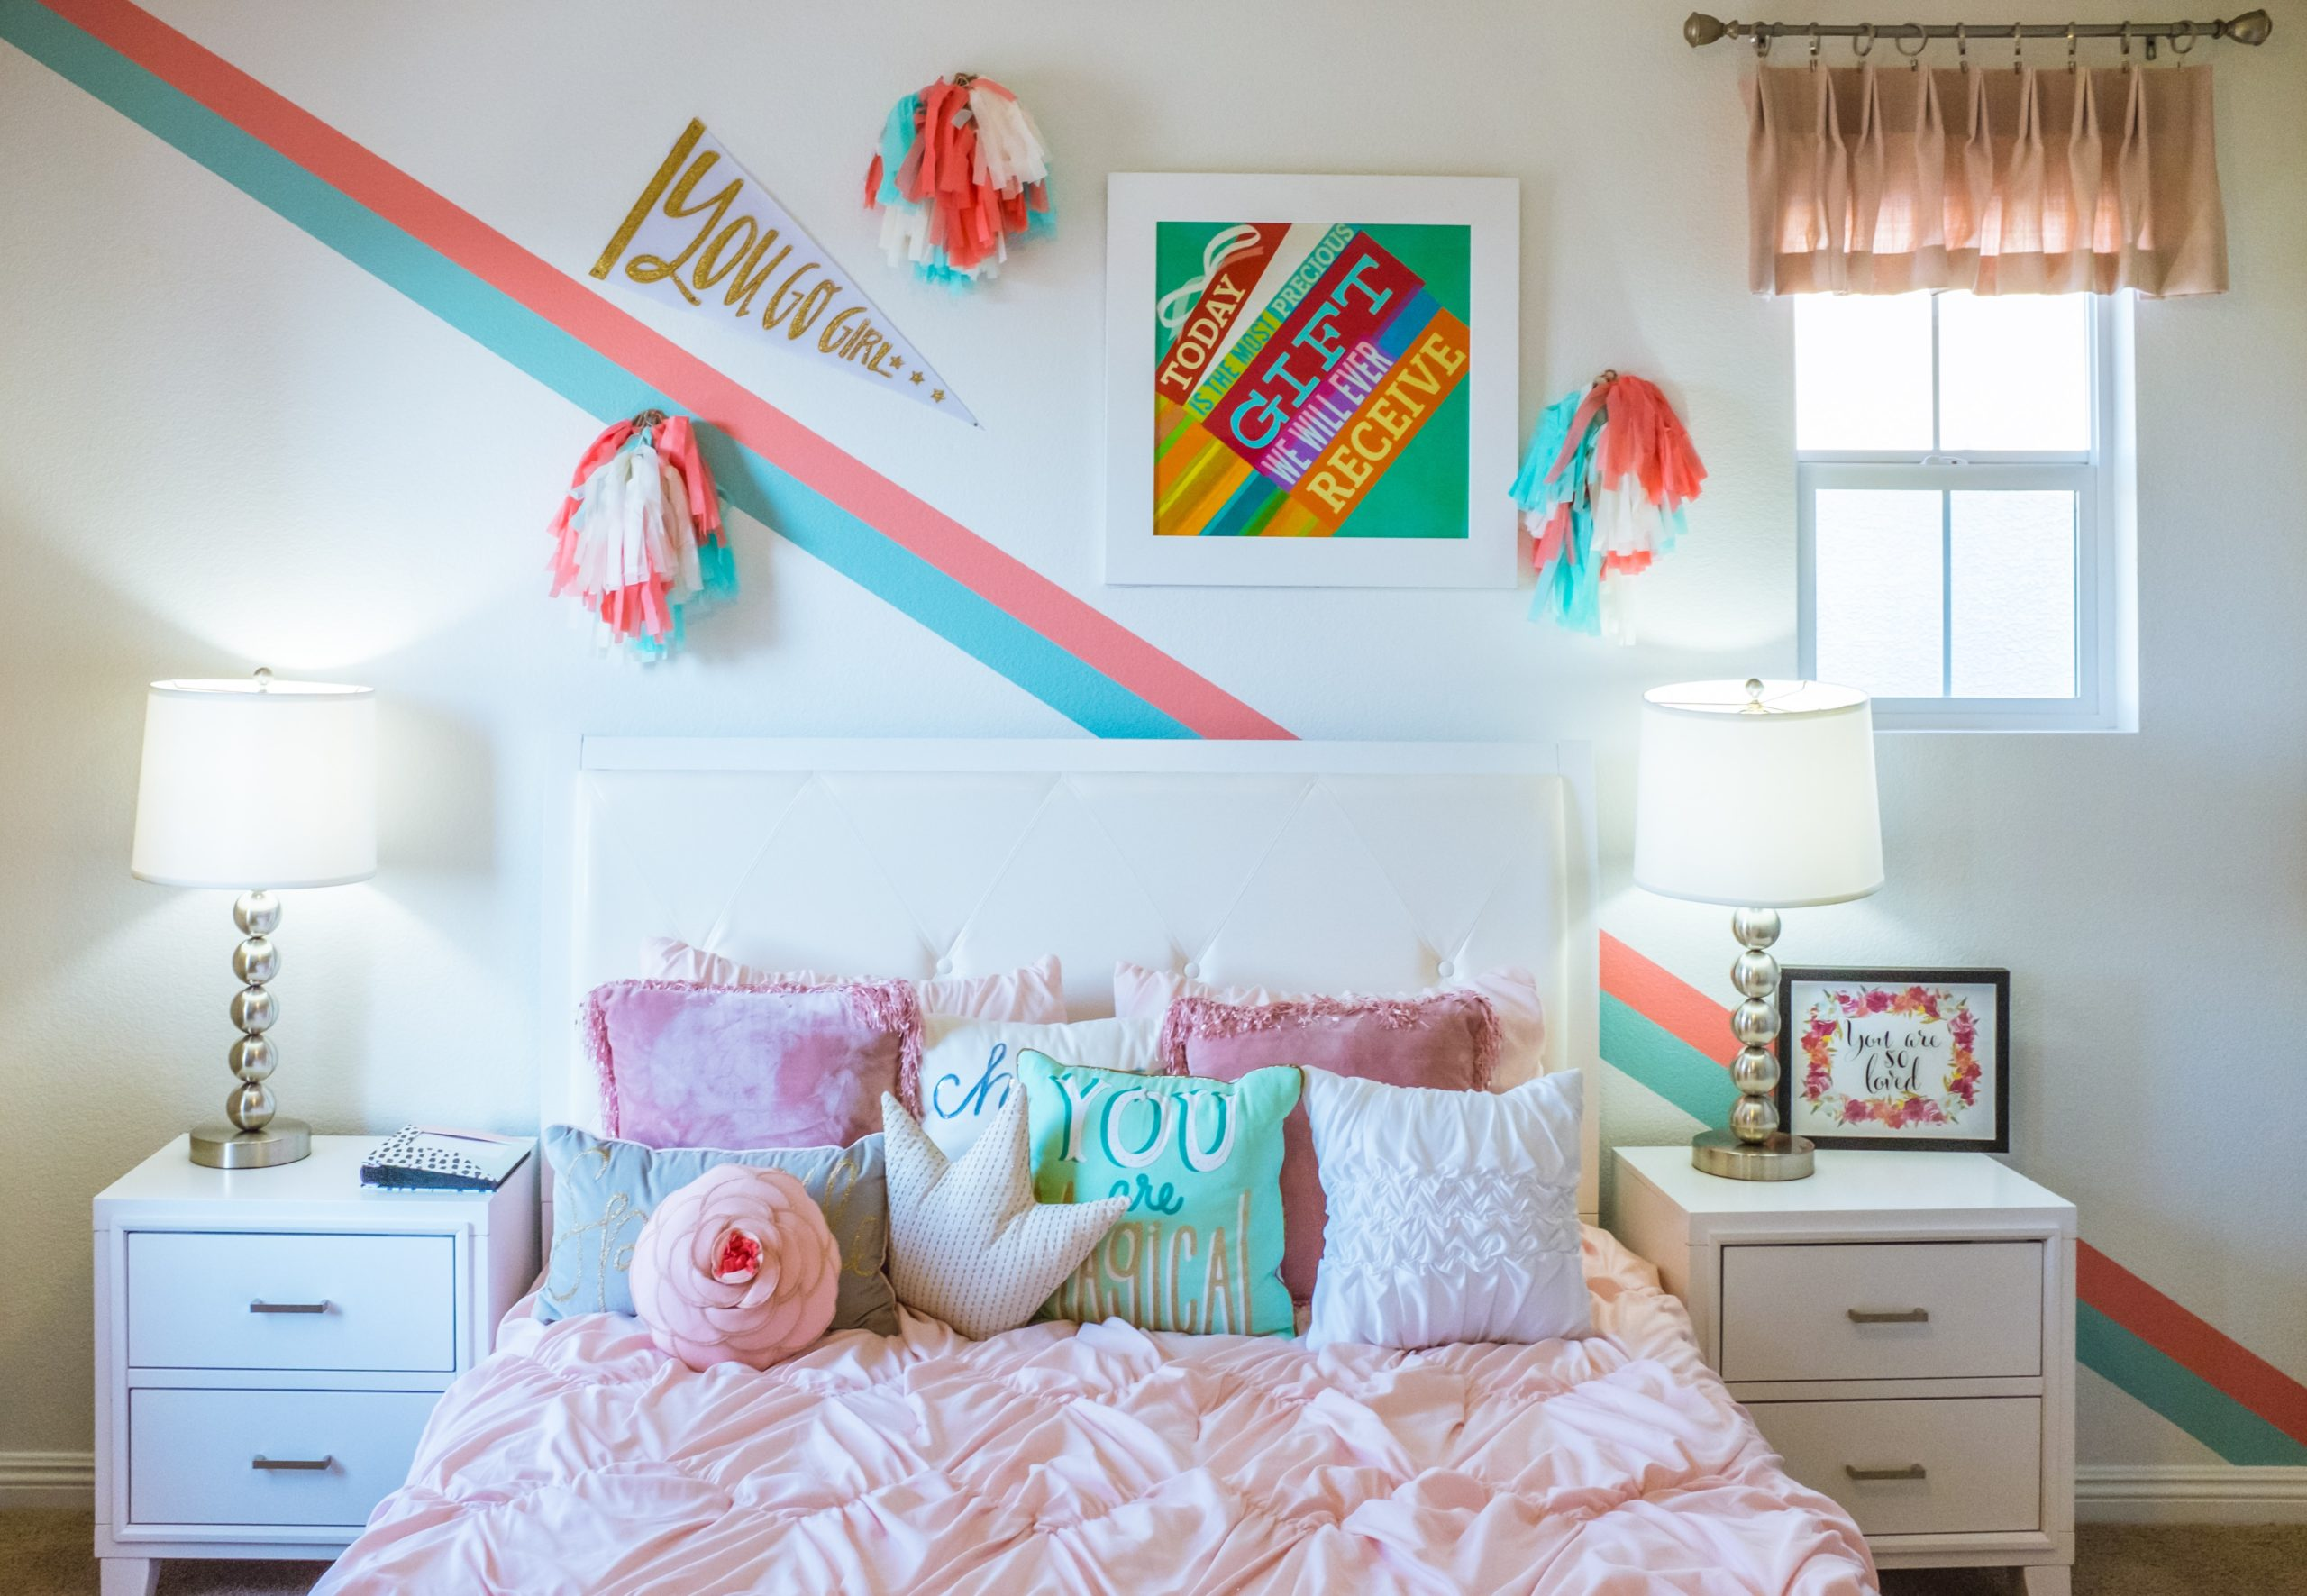 How to Decorate Your University Room